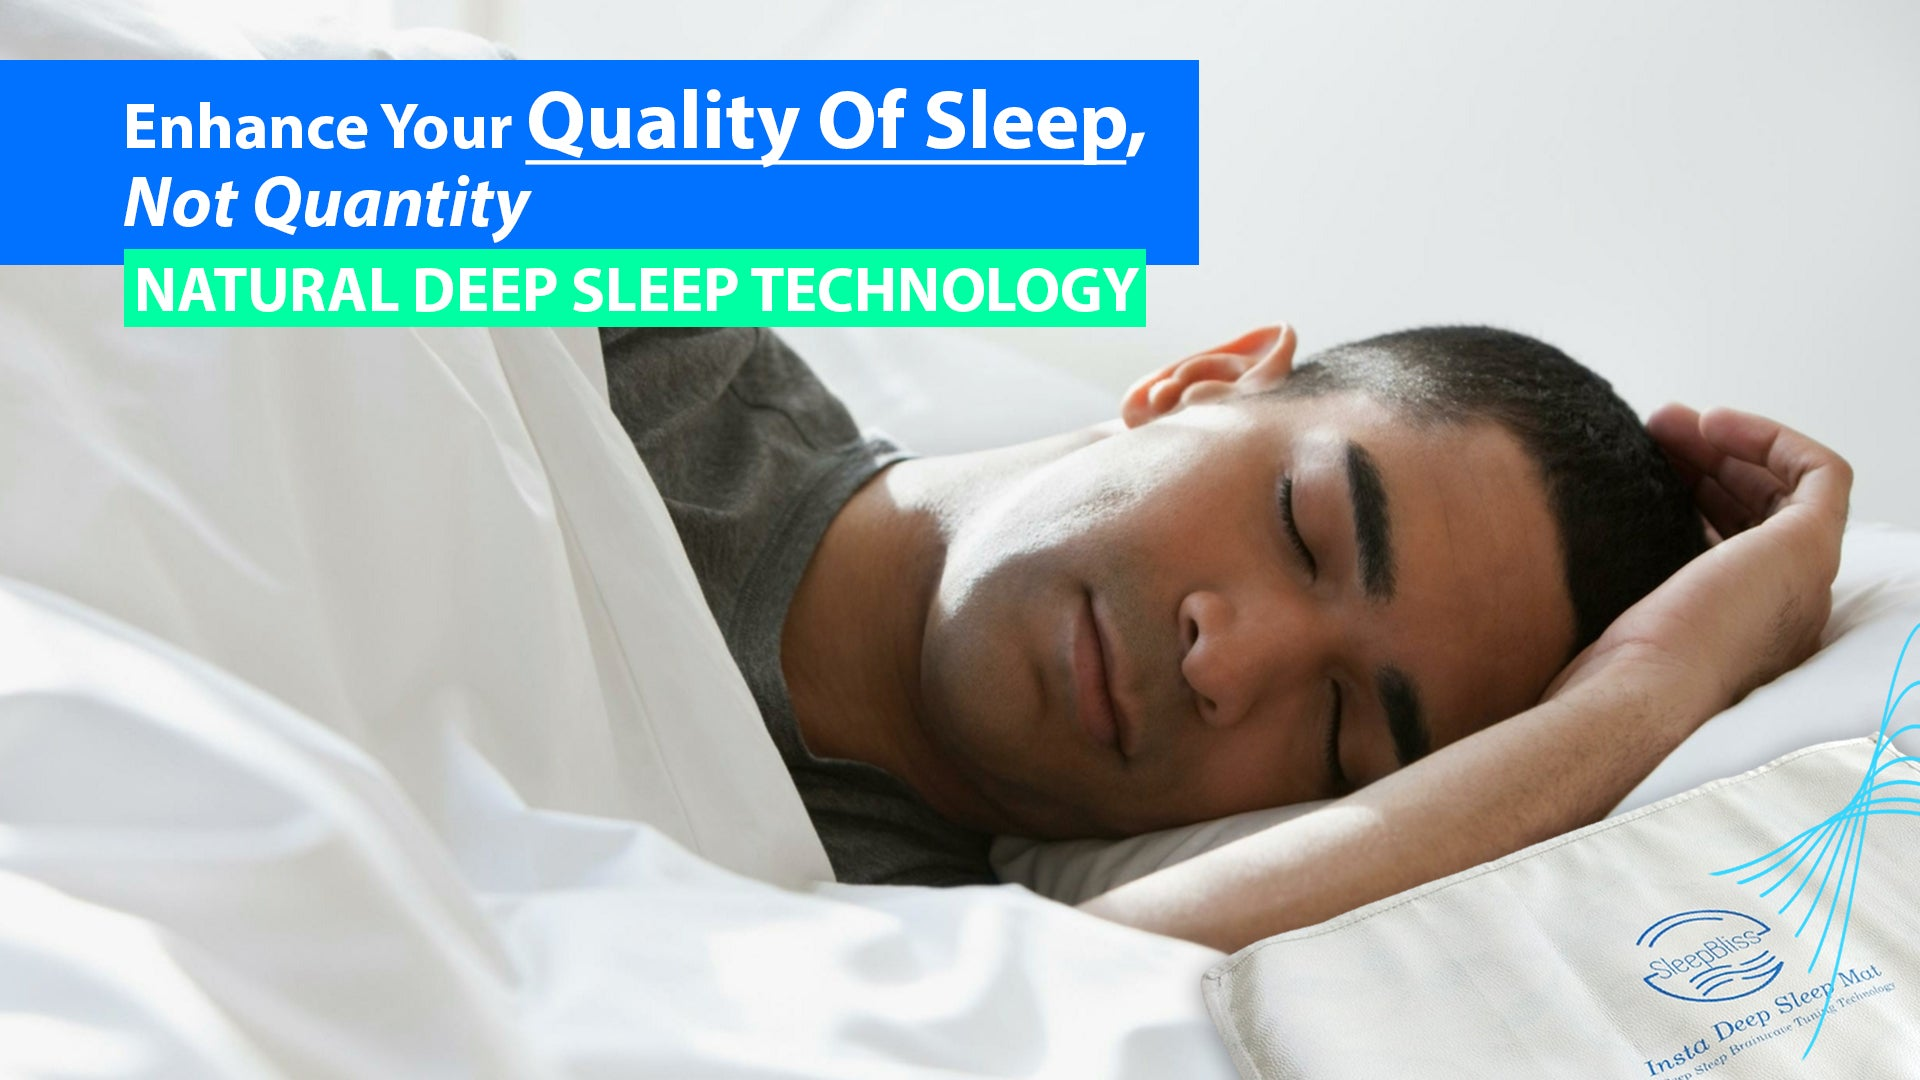 SleepBliss Natural Sleep Aid Enhance Your Quality Of Sleep